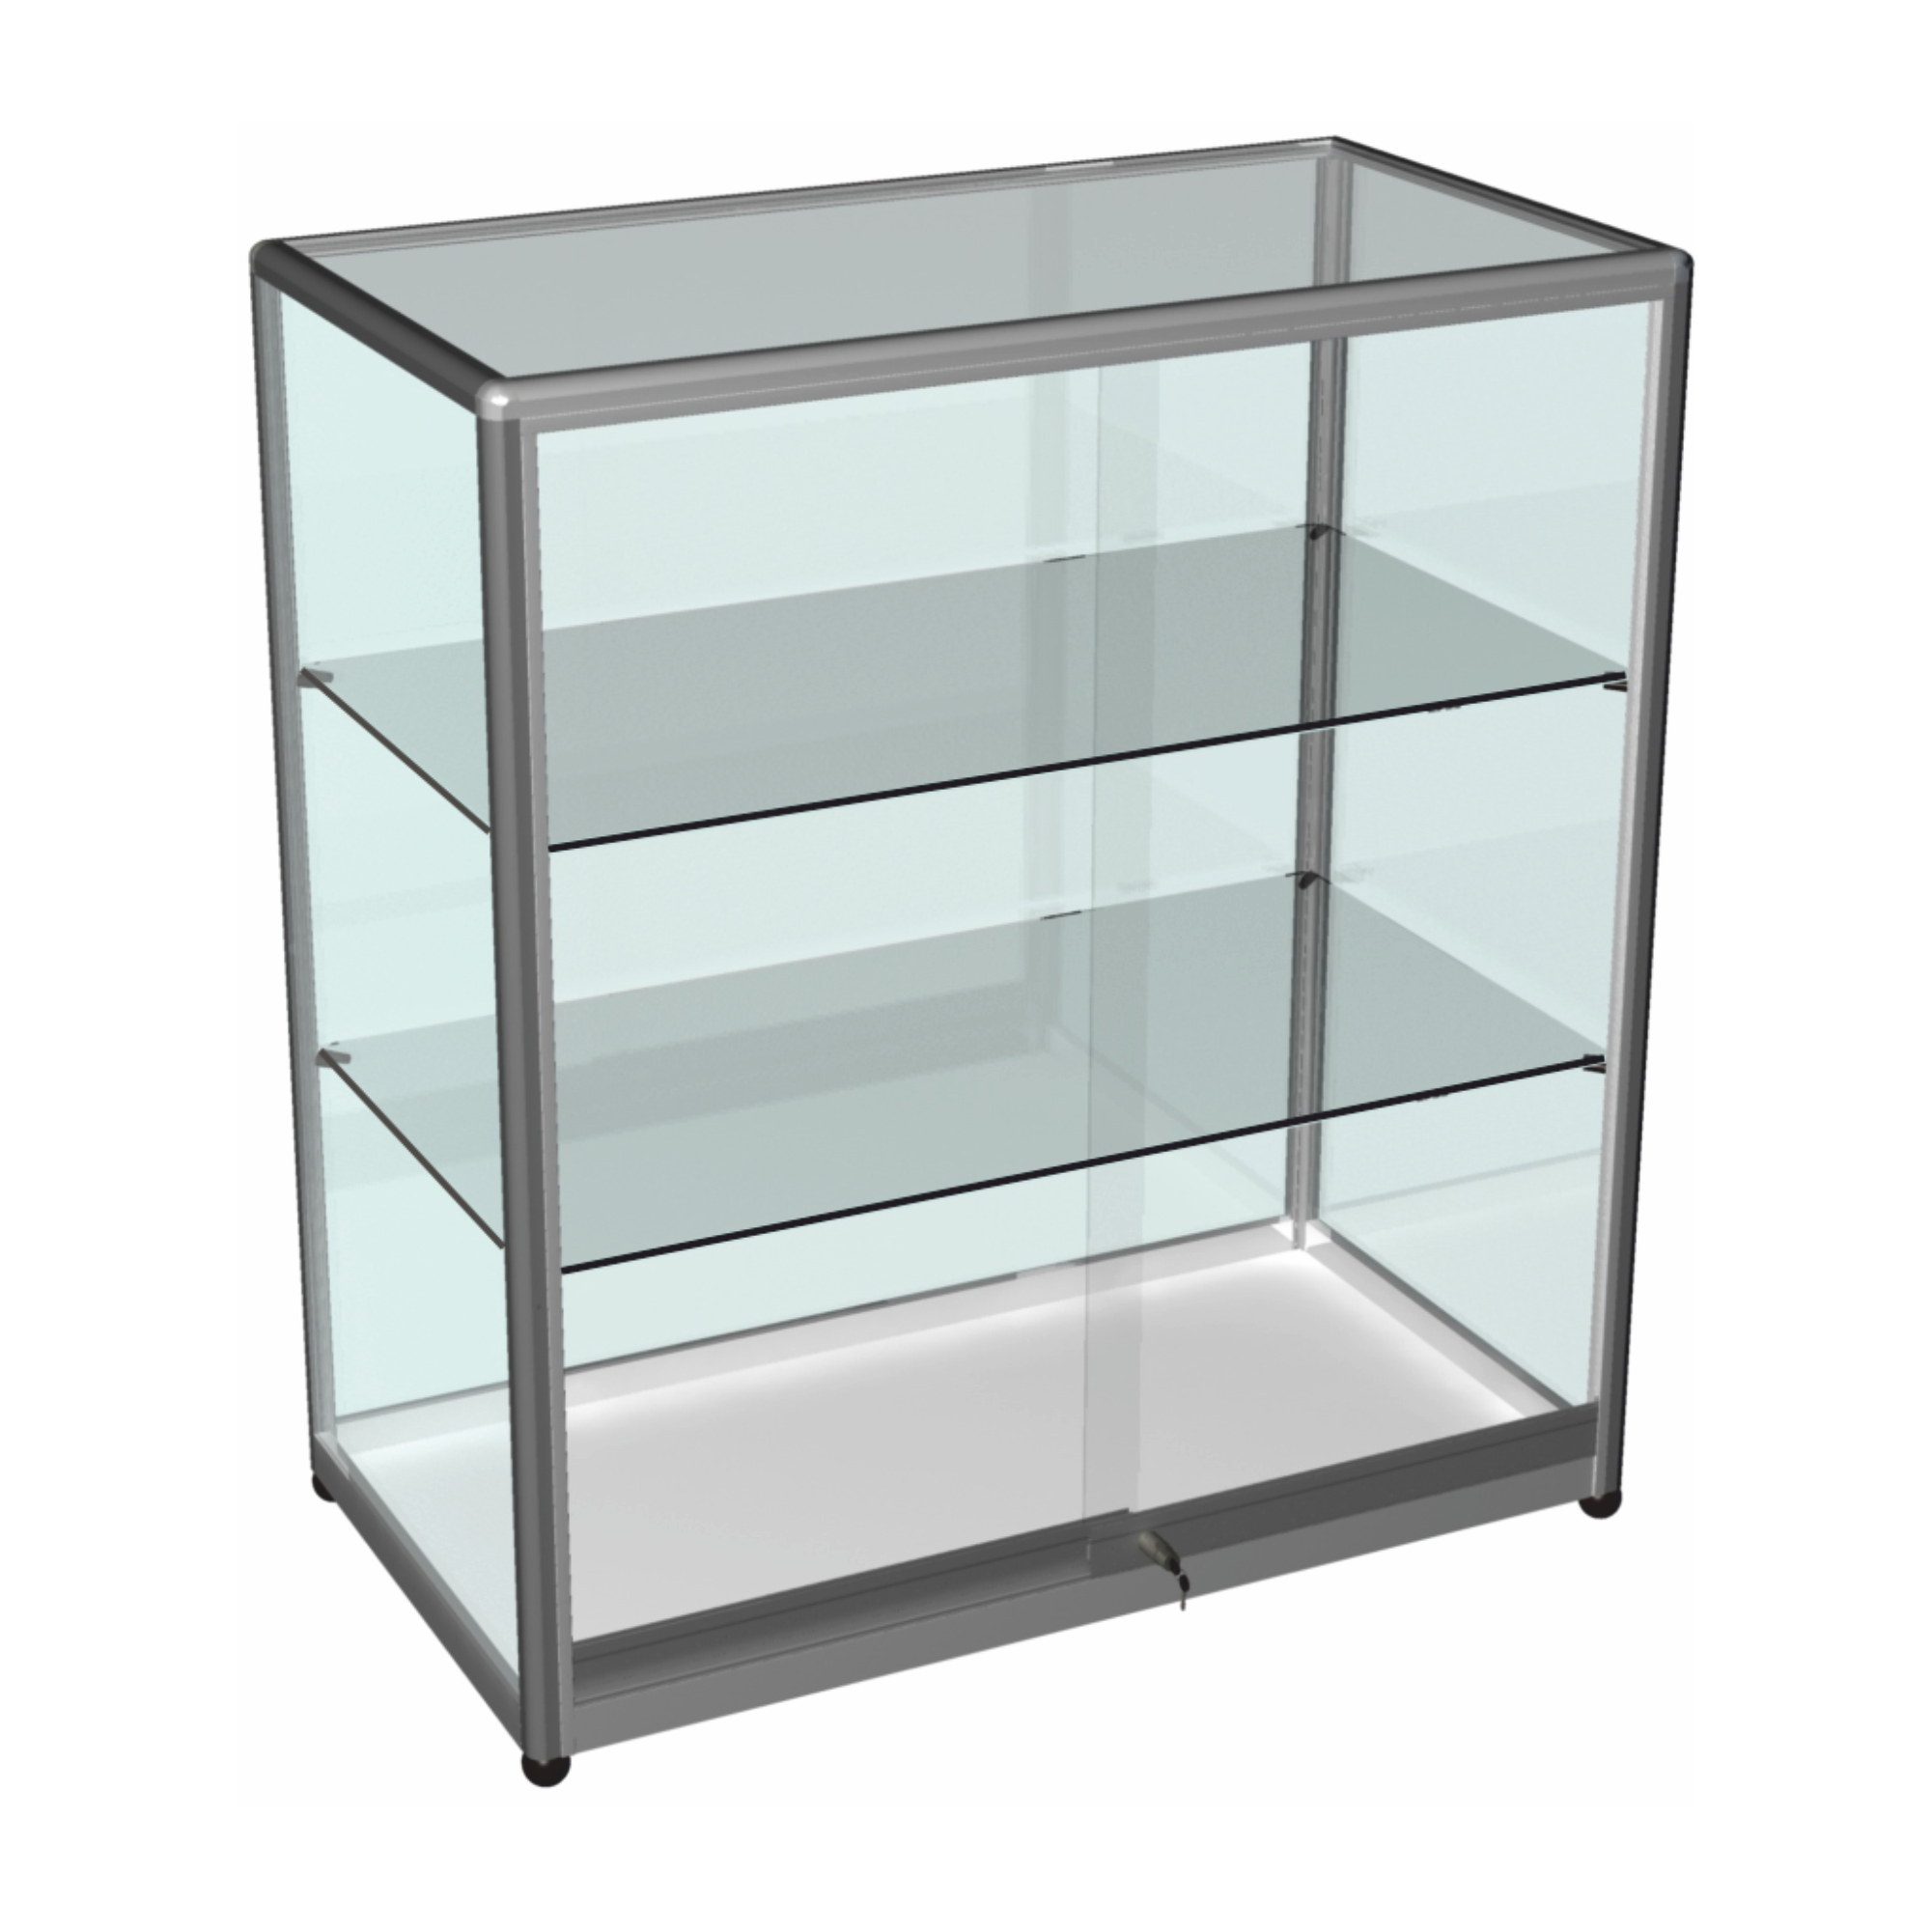 Glasvitrinen Ladenbau Thekenvitrine | Ores Display Online Marketing